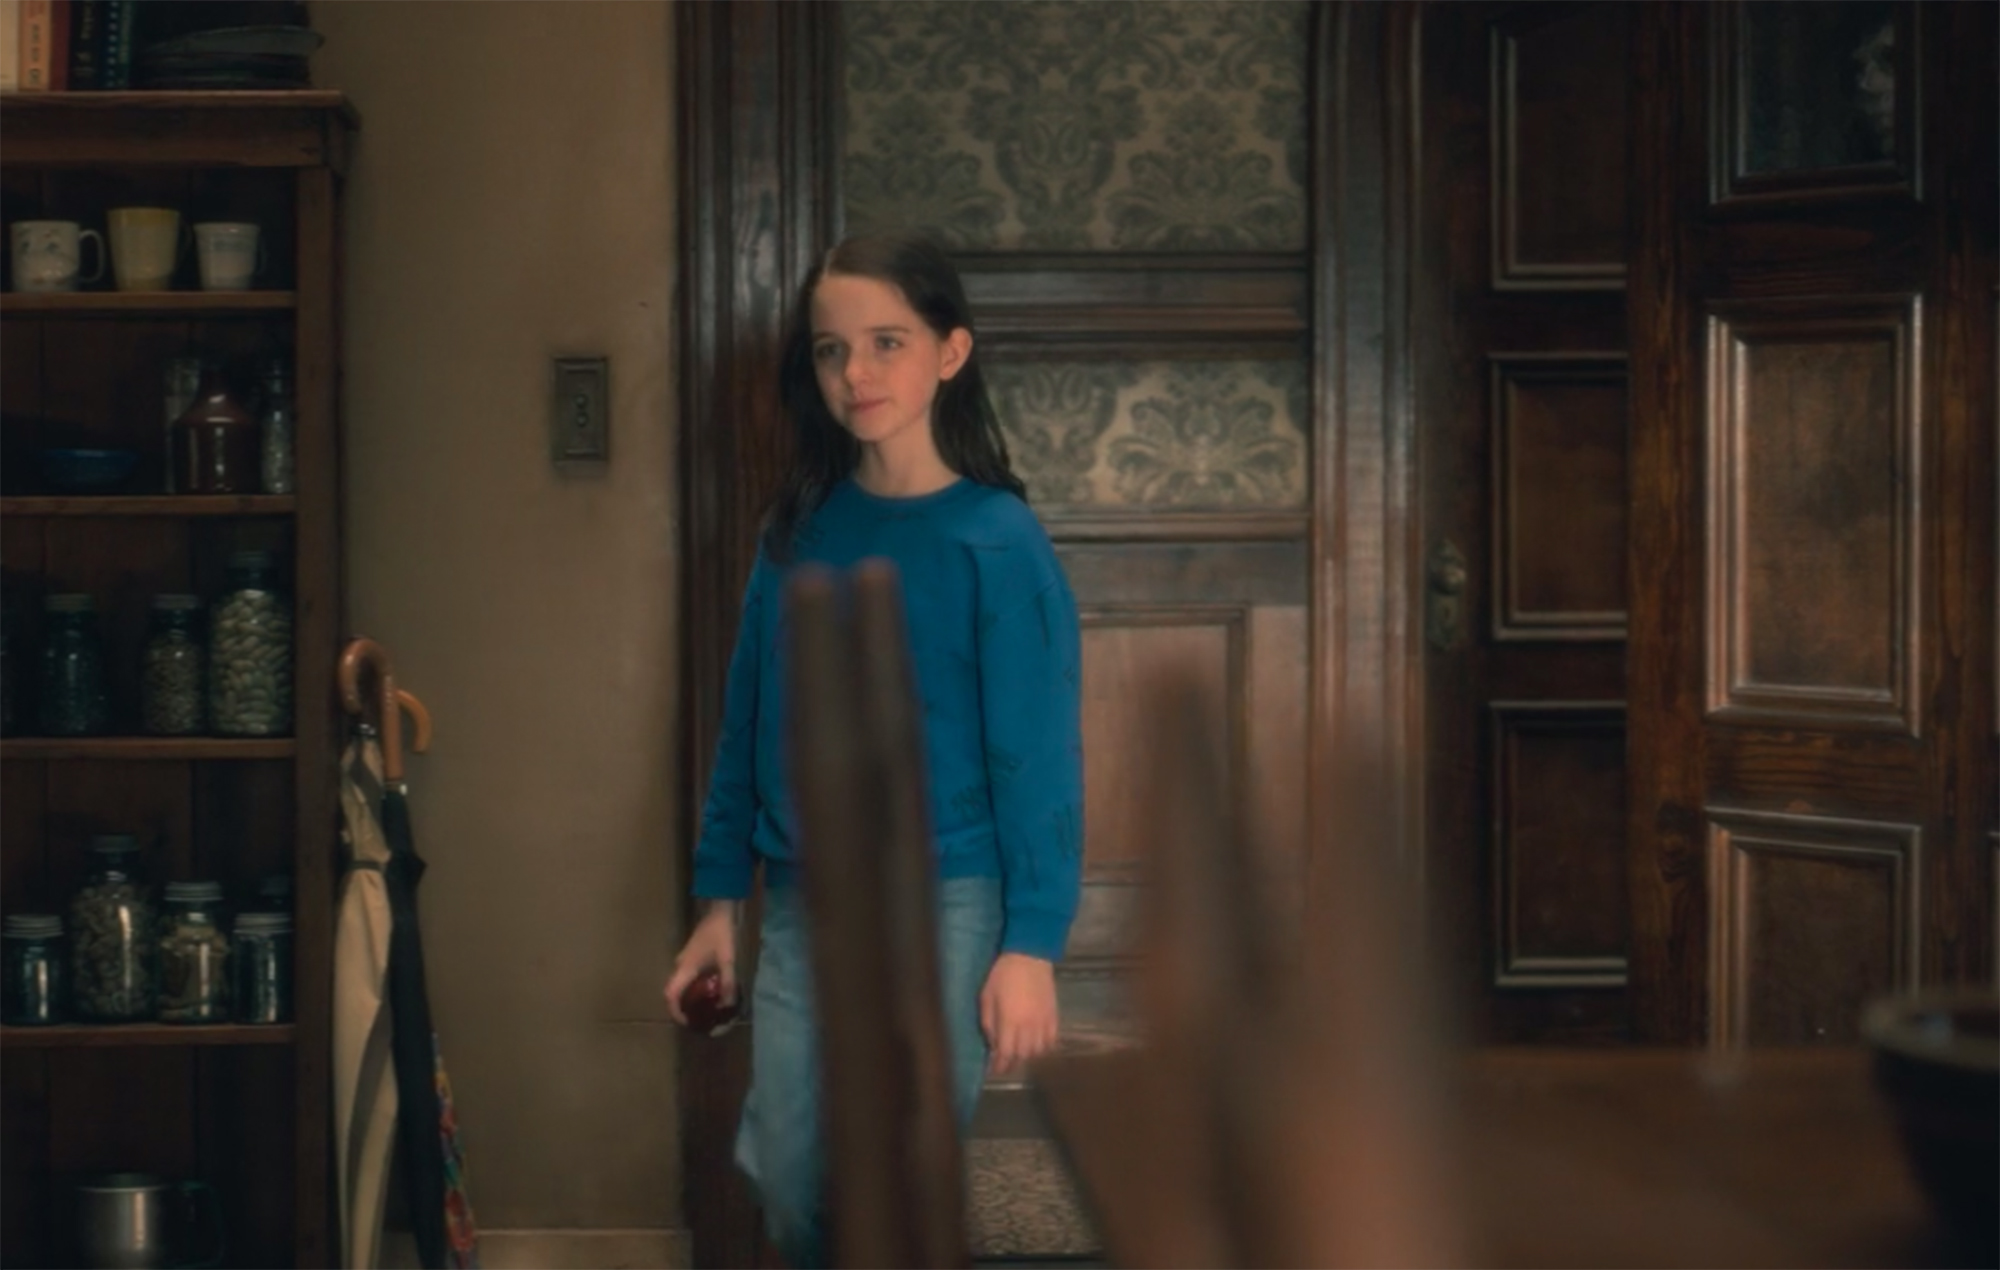 The Haunting of Hill House: 33 secret ghosts hiding in the